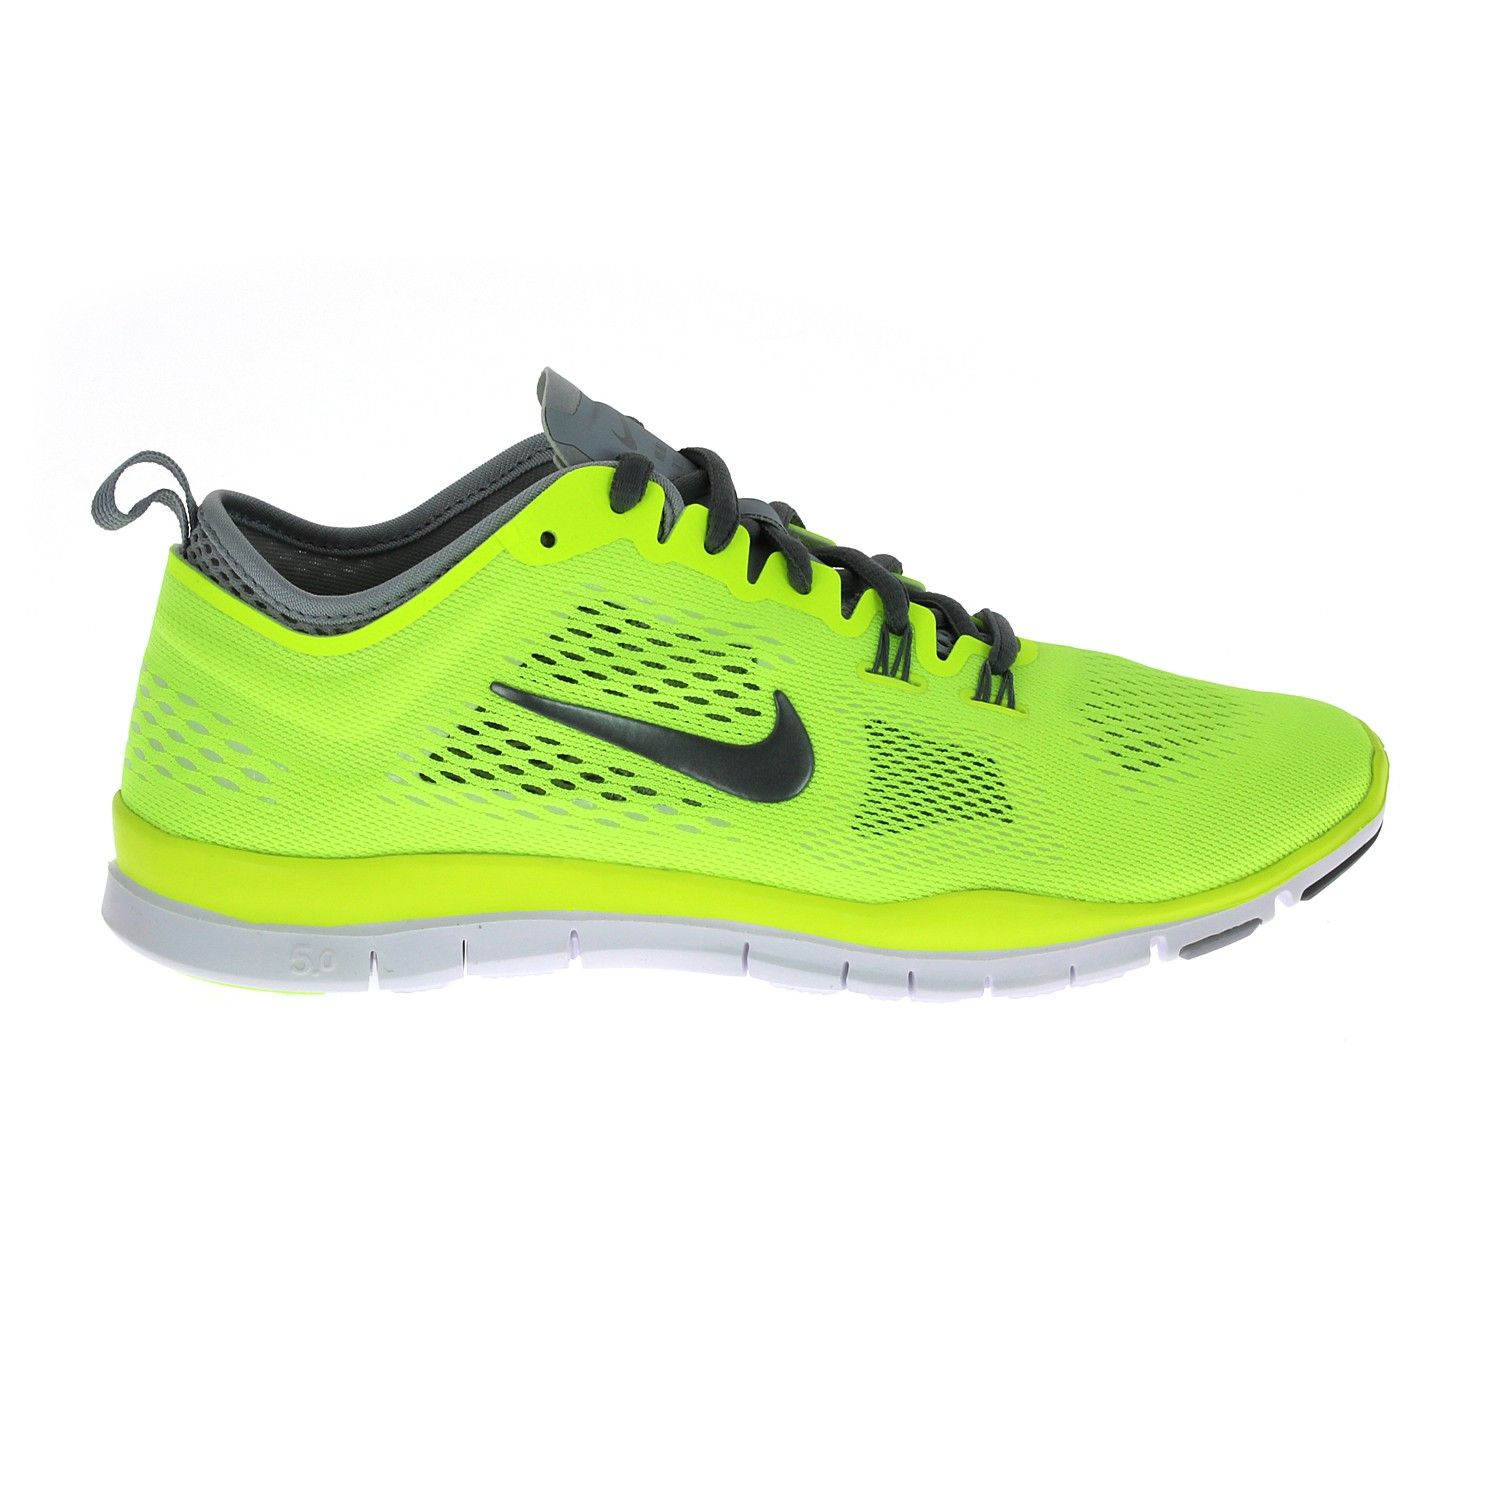 Women's Nike Free TR 4 Training Shoe is lighter than its predecessor with a  revolutionary upper that uses breathable engineered mesh.